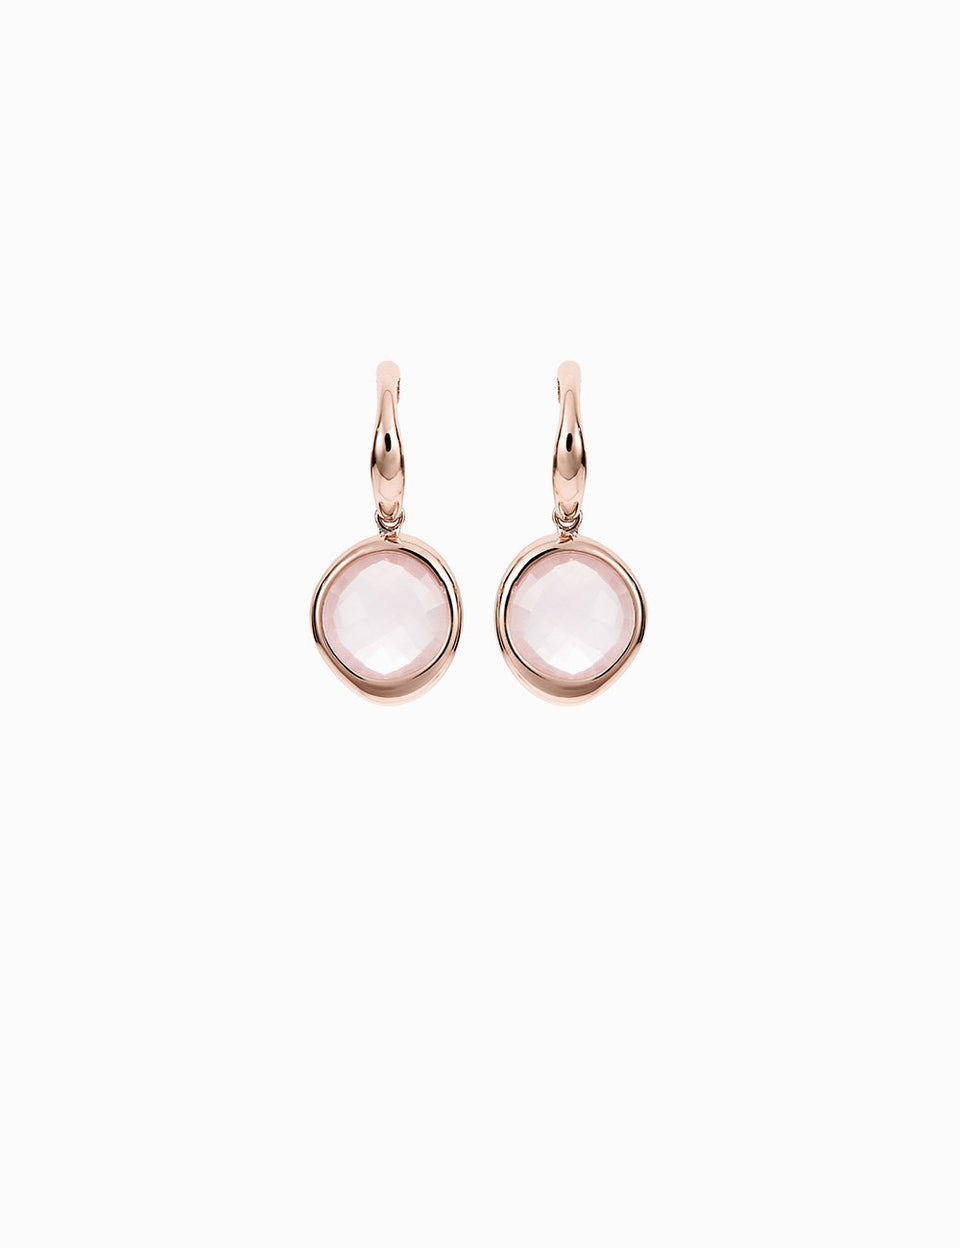 Pink Gold and Rose Quartz Earrings handmade by Roosik & Co